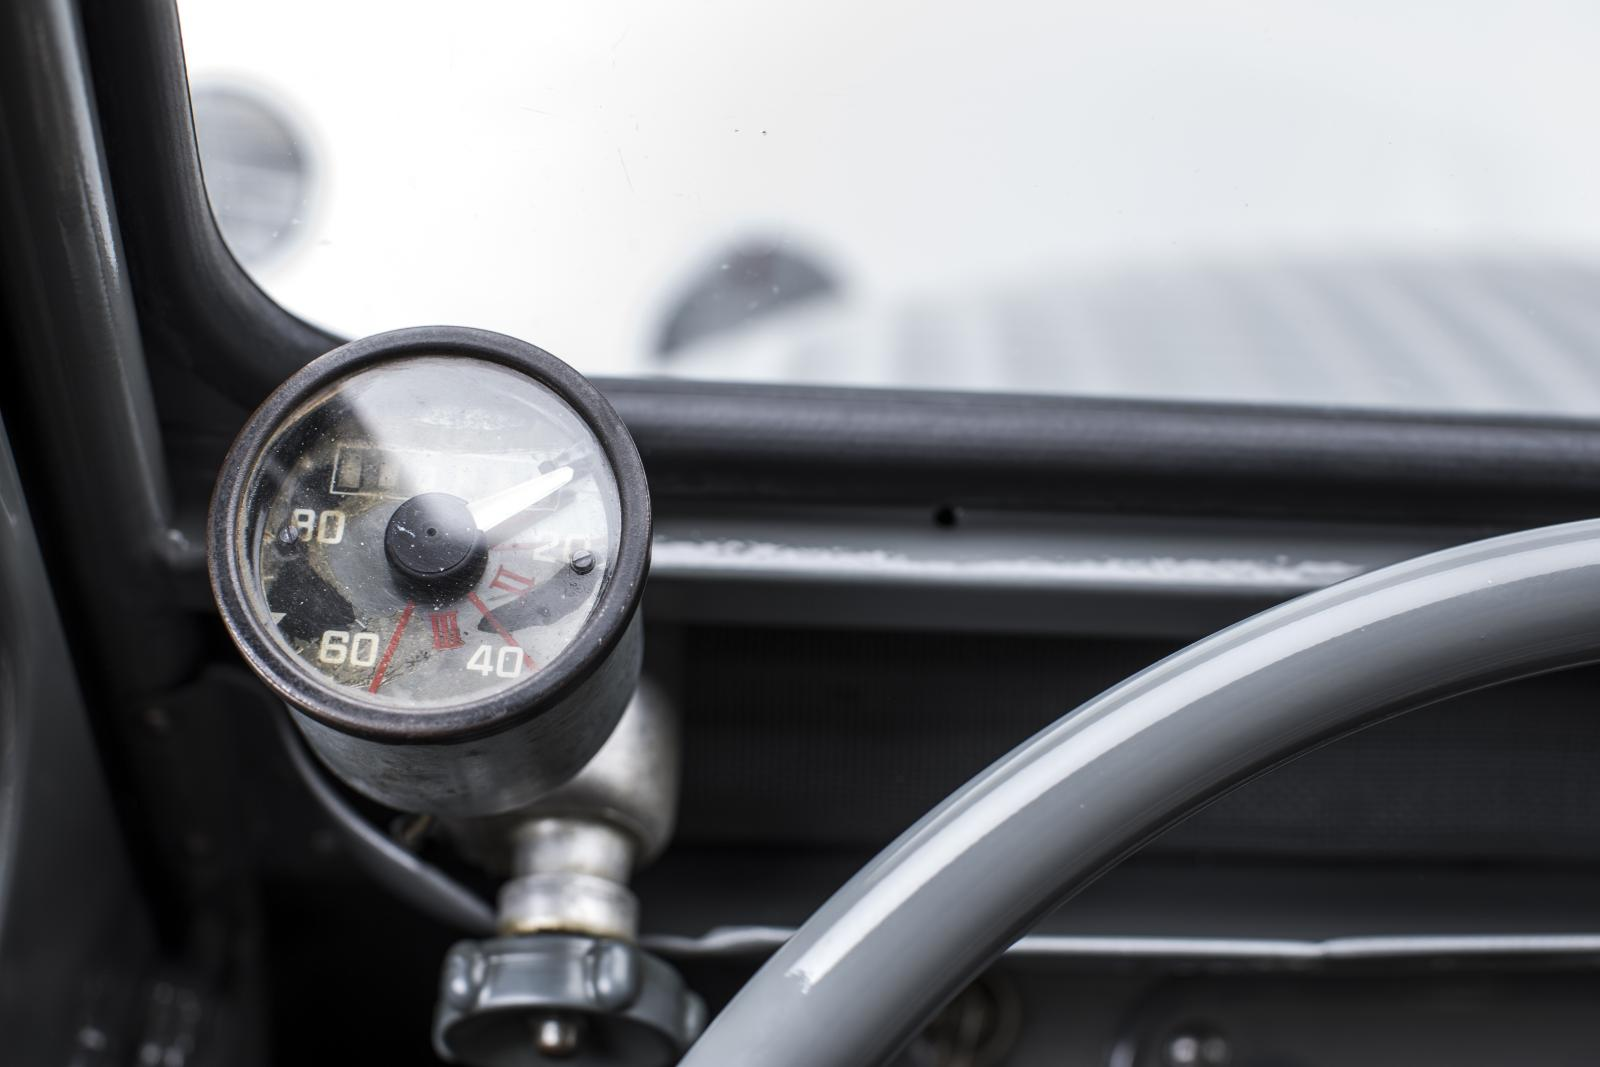 2 CV mini van speedometer